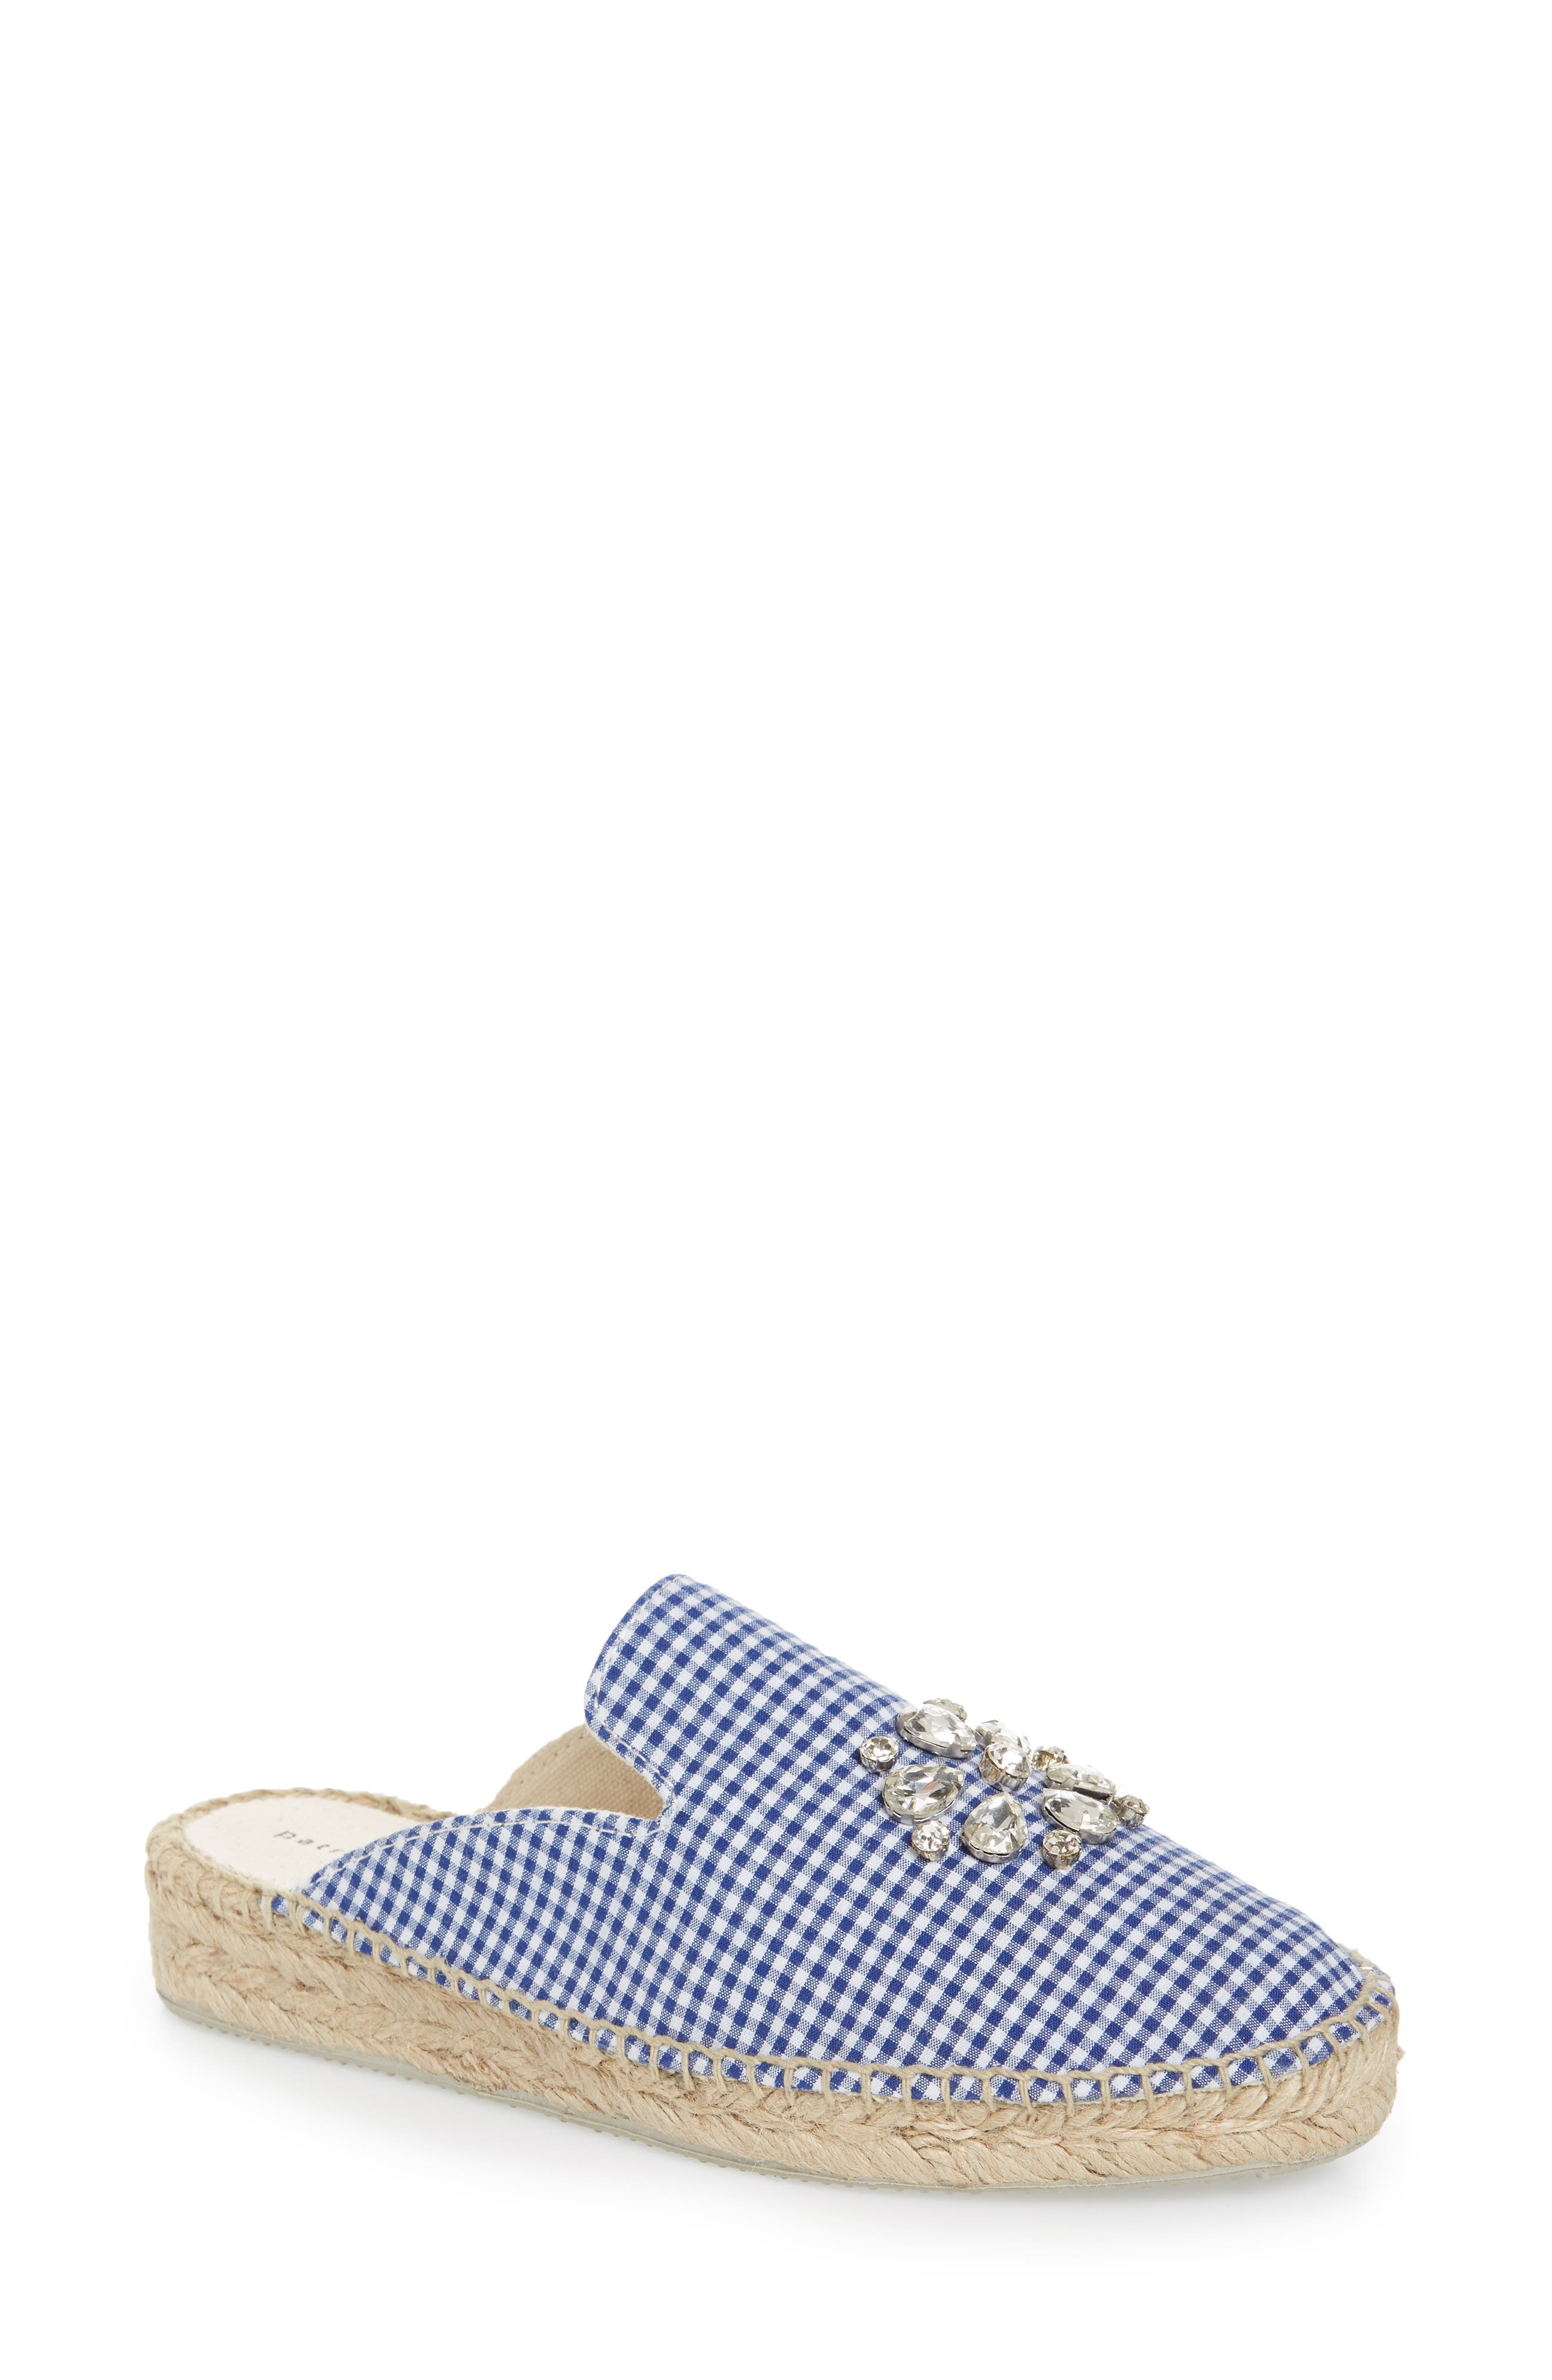 Gingham Glam Embellished Loafer Mule,                             Main thumbnail 1, color,                             Blue Fabric